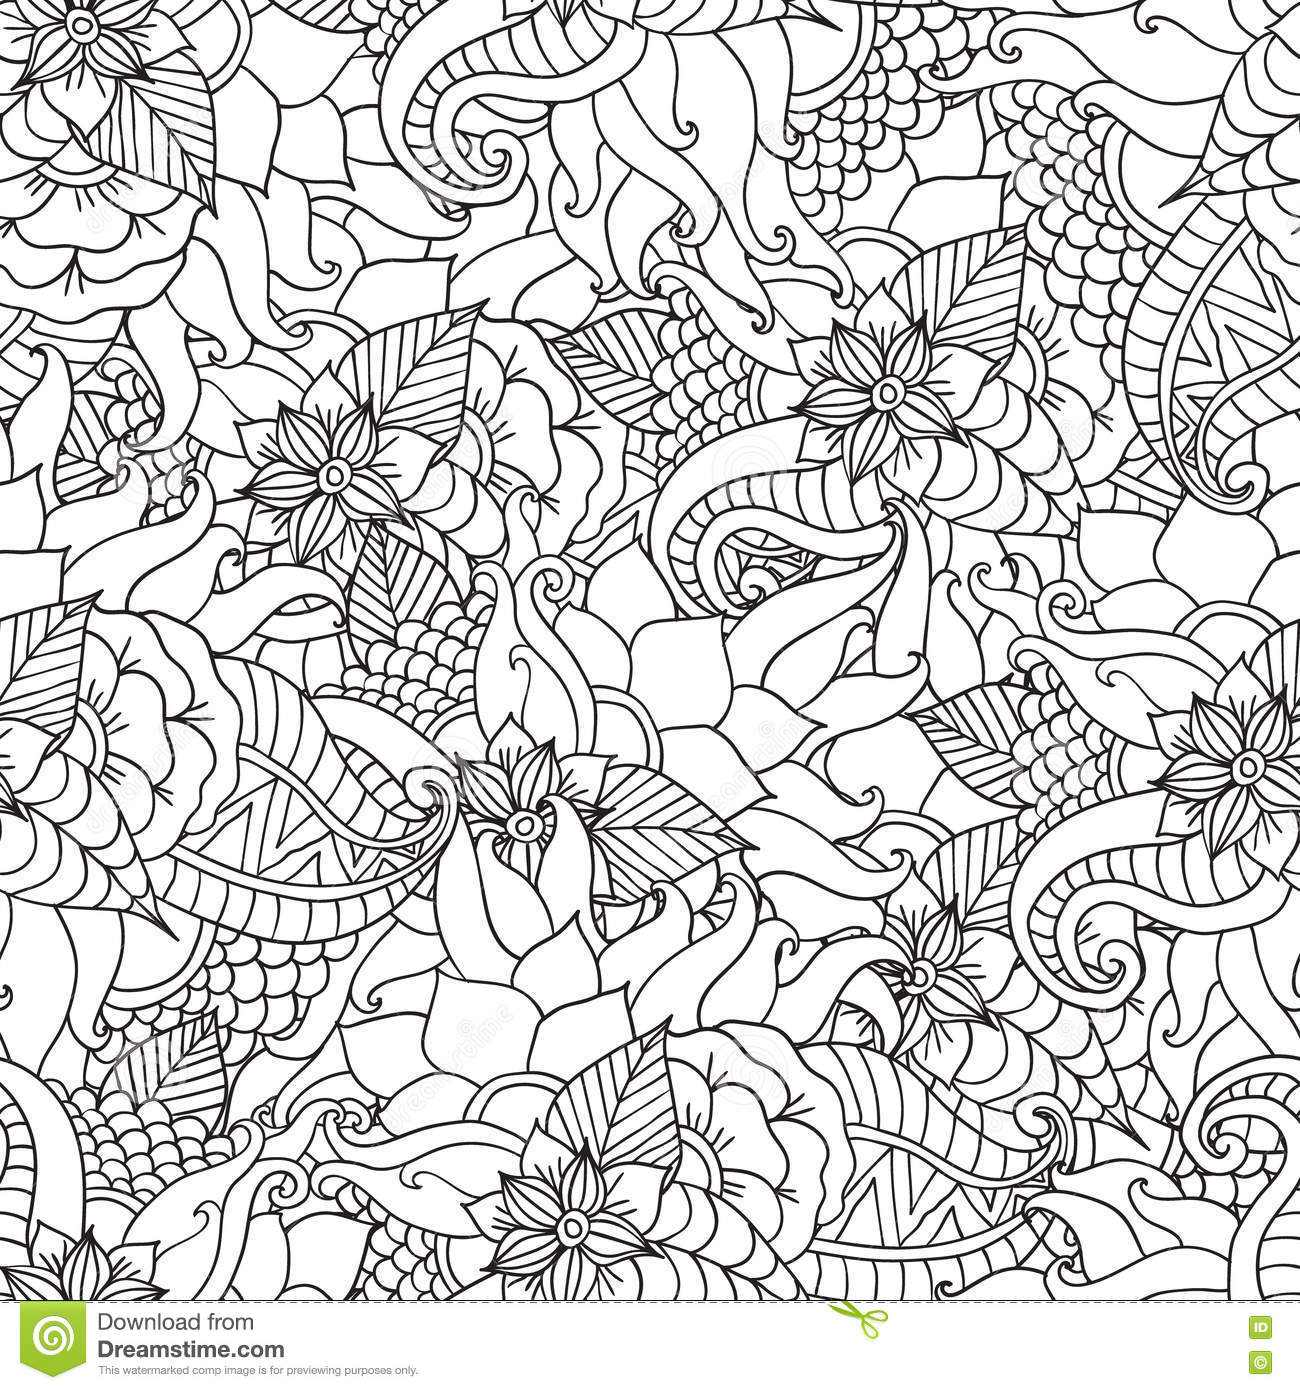 black and white coloring pages for adults Coloring Pages For Adults.Decorative Hand Drawn Doodle Nature  black and white coloring pages for adults